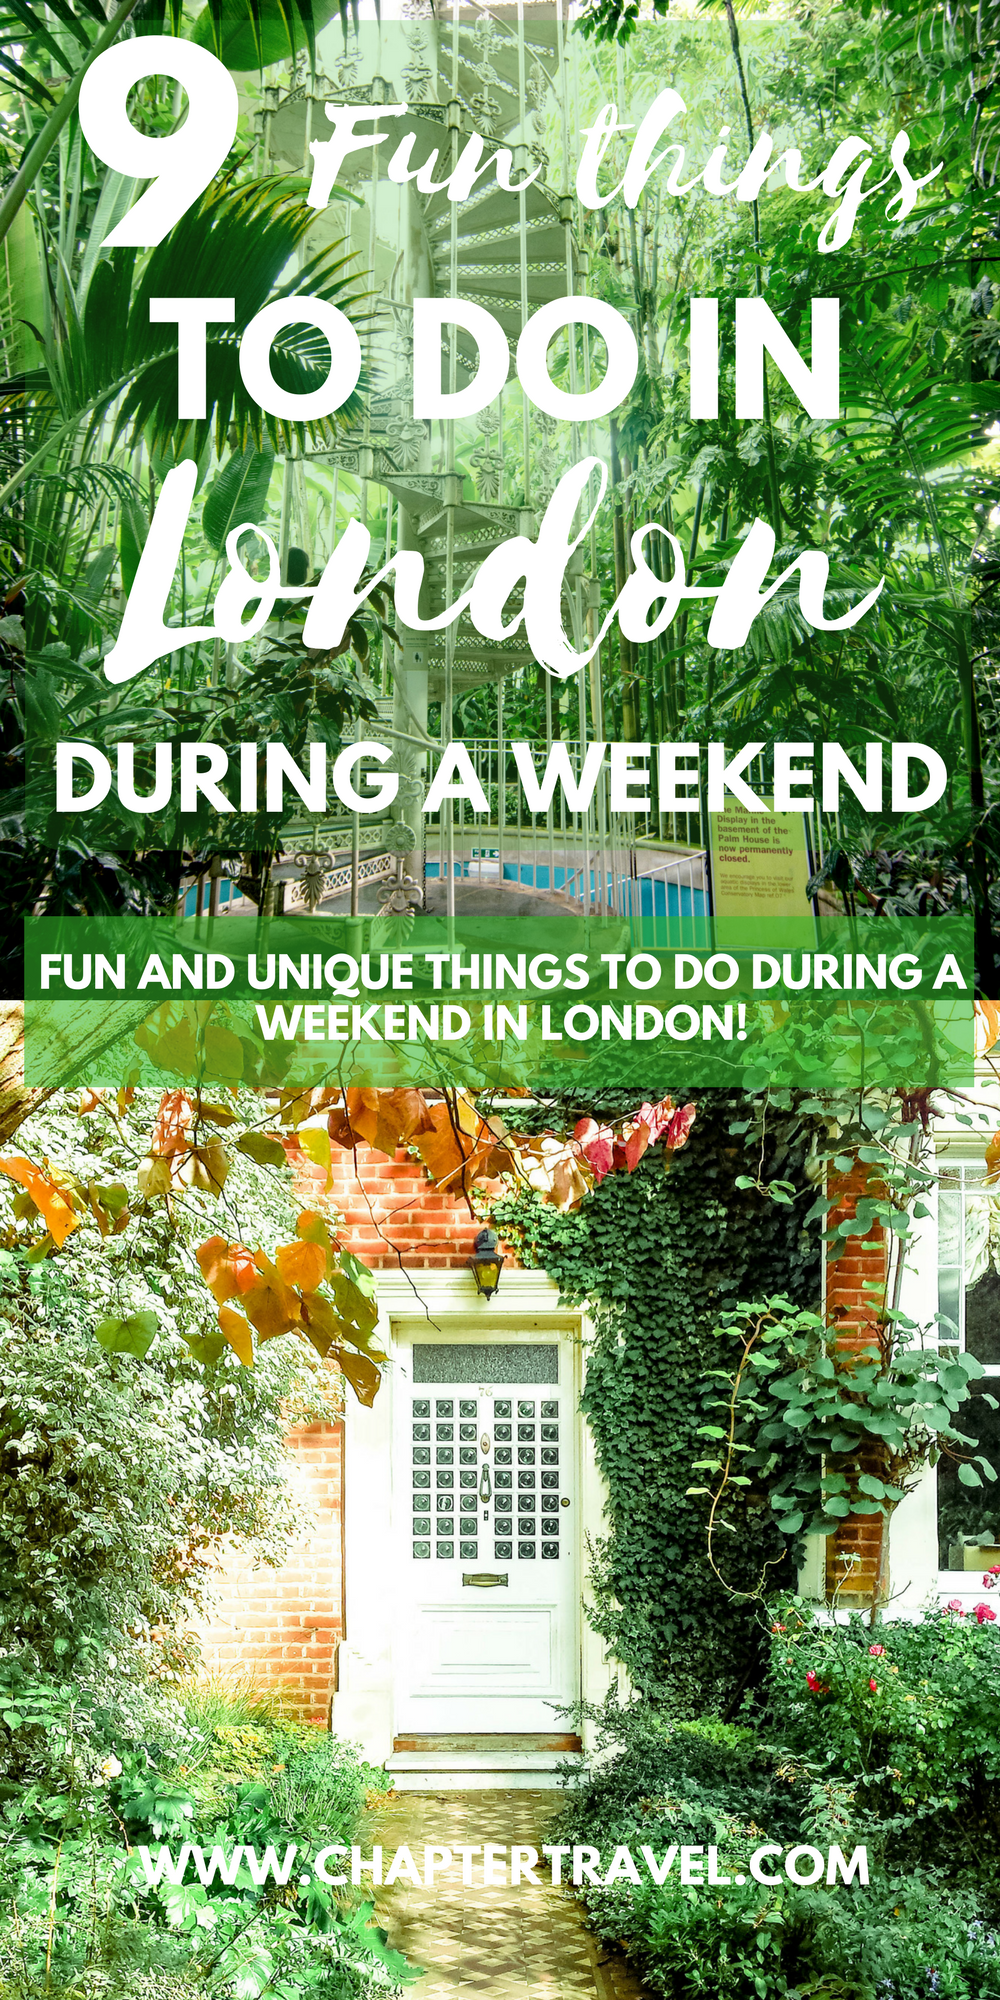 9 fun things to do in london during a weekend weekend london london united kingdom europe kew gardens 9 fun things to do in london during a long weekend london united kingdom london england fun things to do in sisterspd